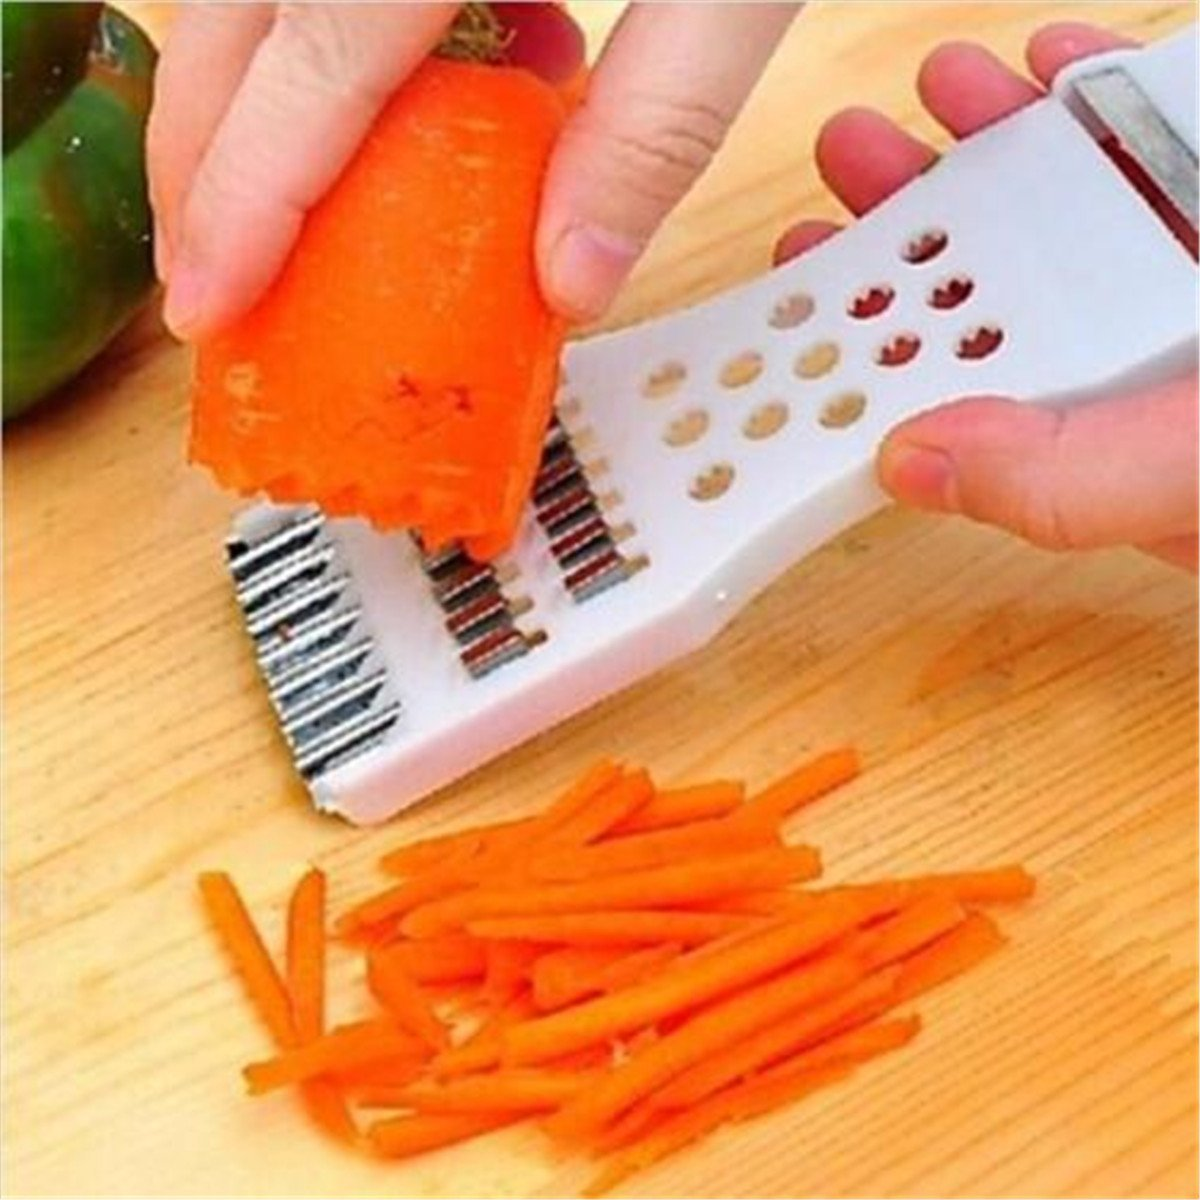 Multifunctional Peeler/Slicer